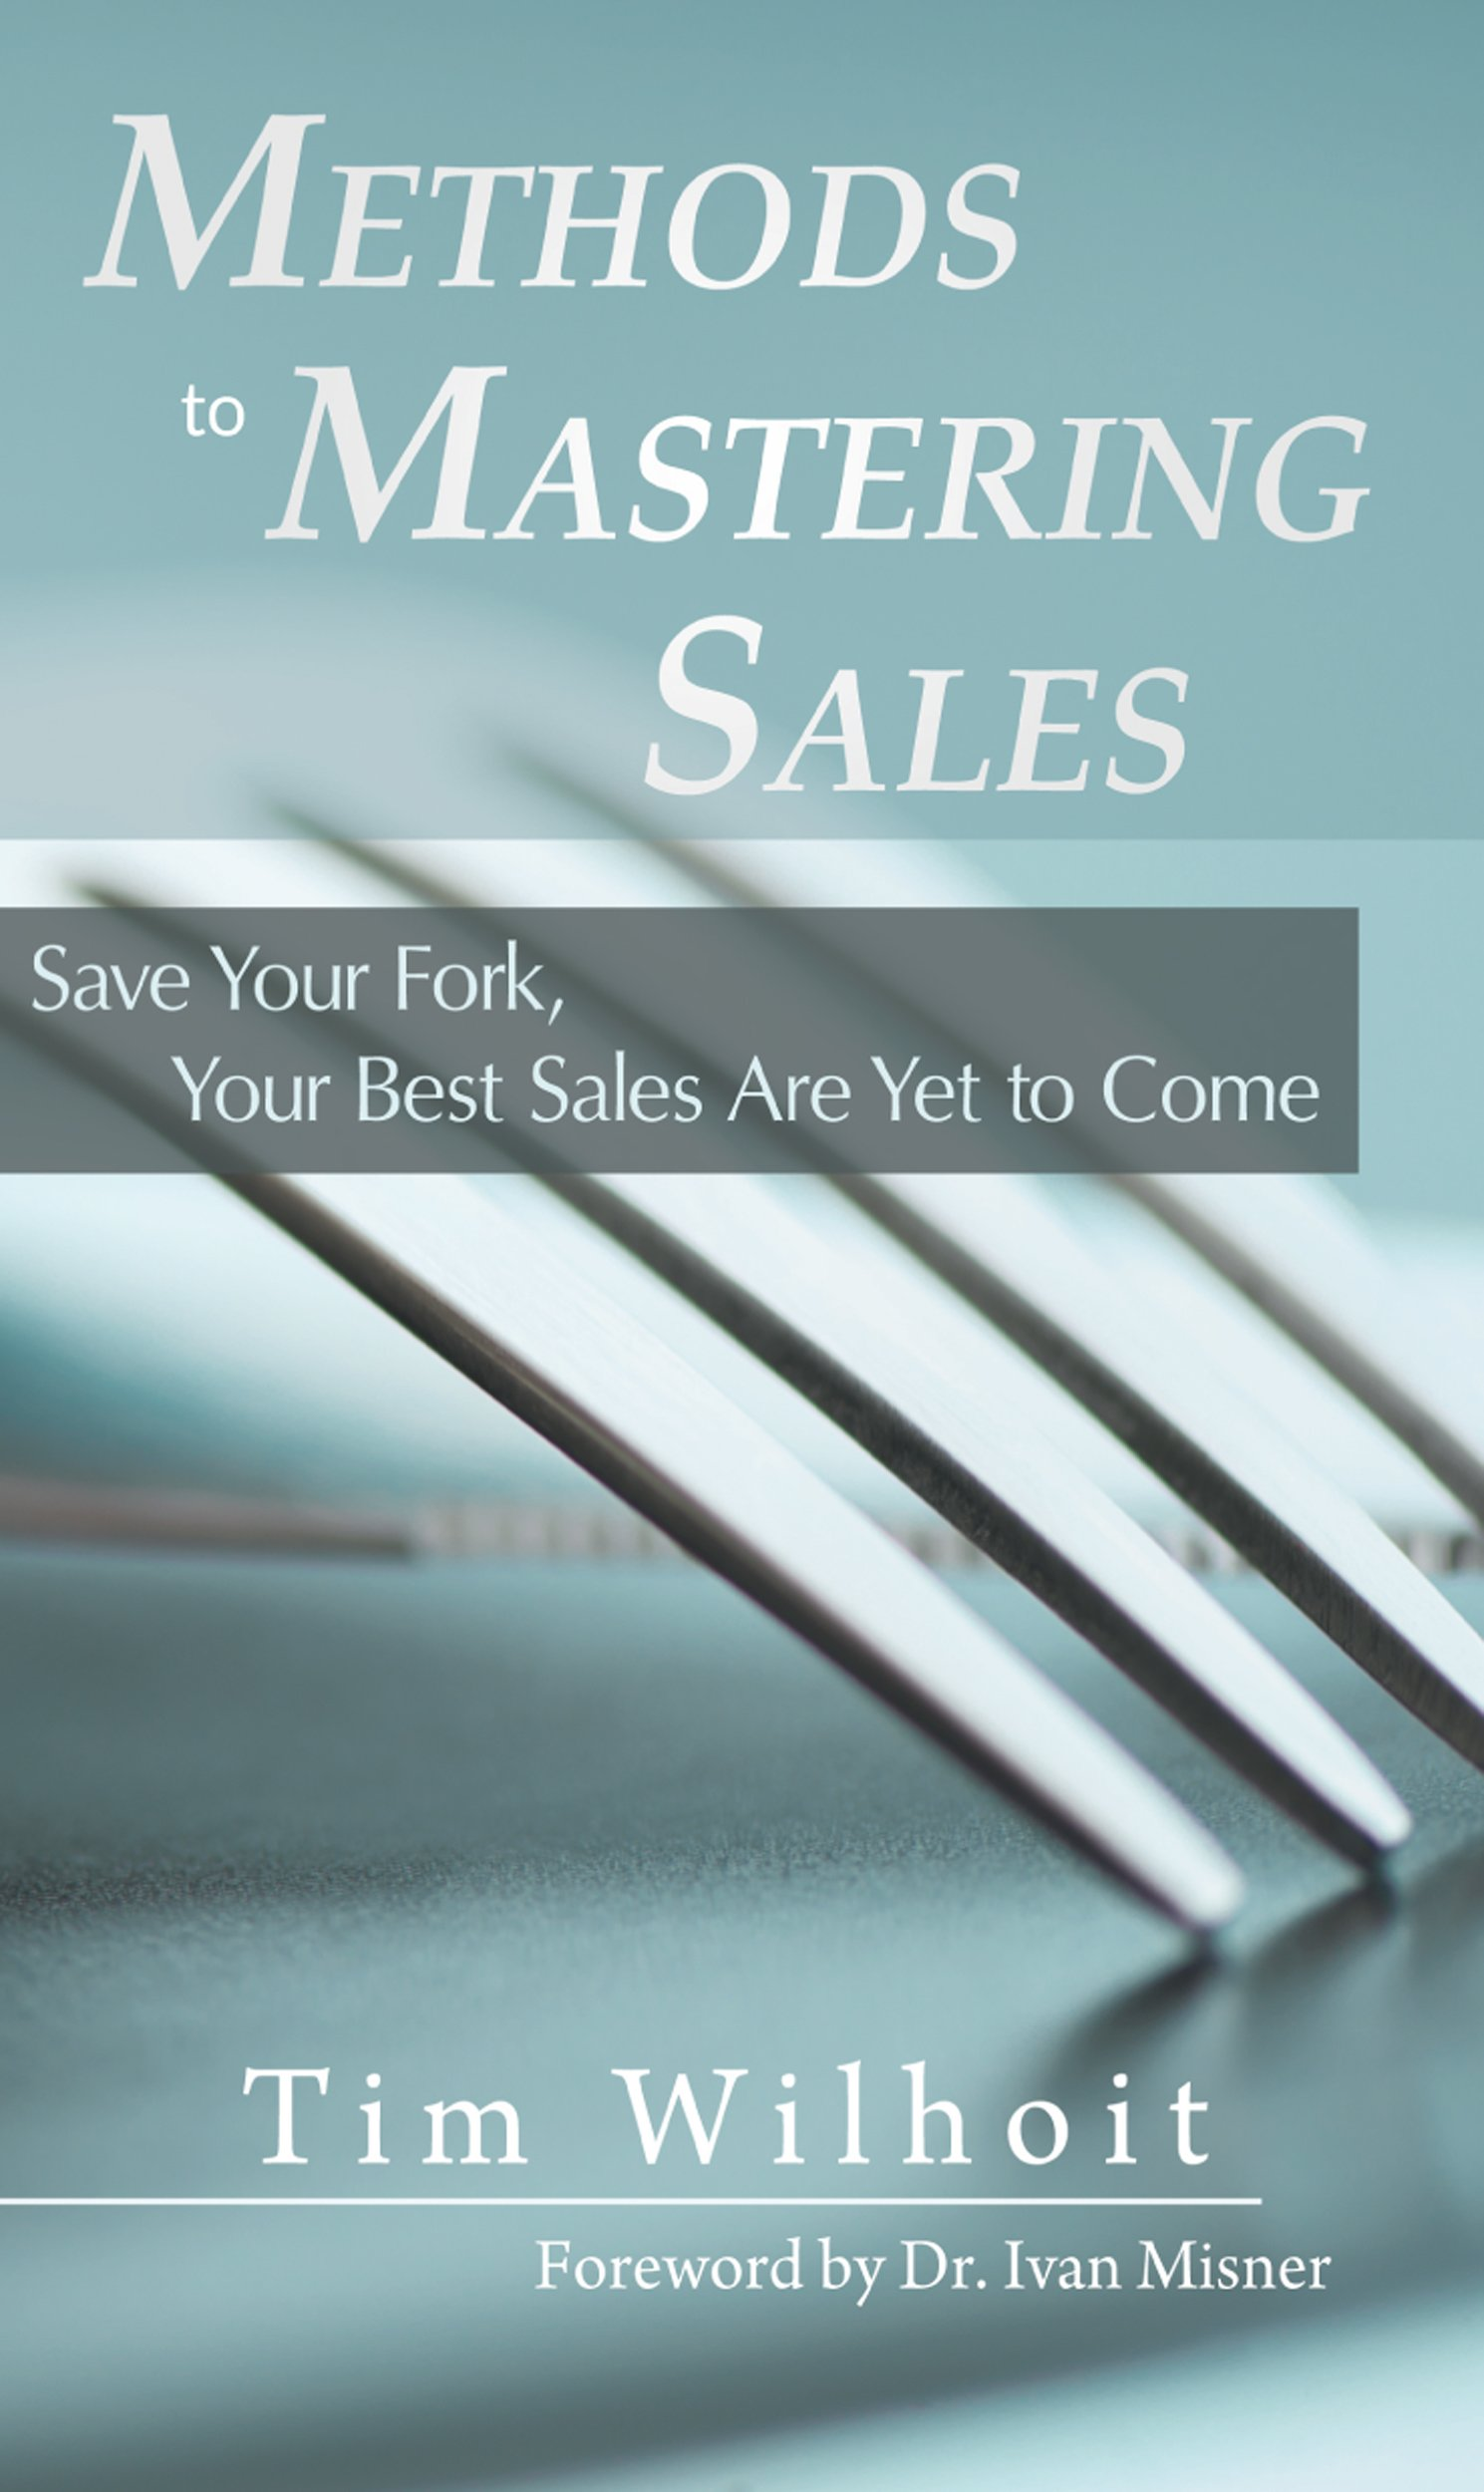 Methods to Mastering Sales: Save Your Fork, Your Best Sales Are Yet to Come